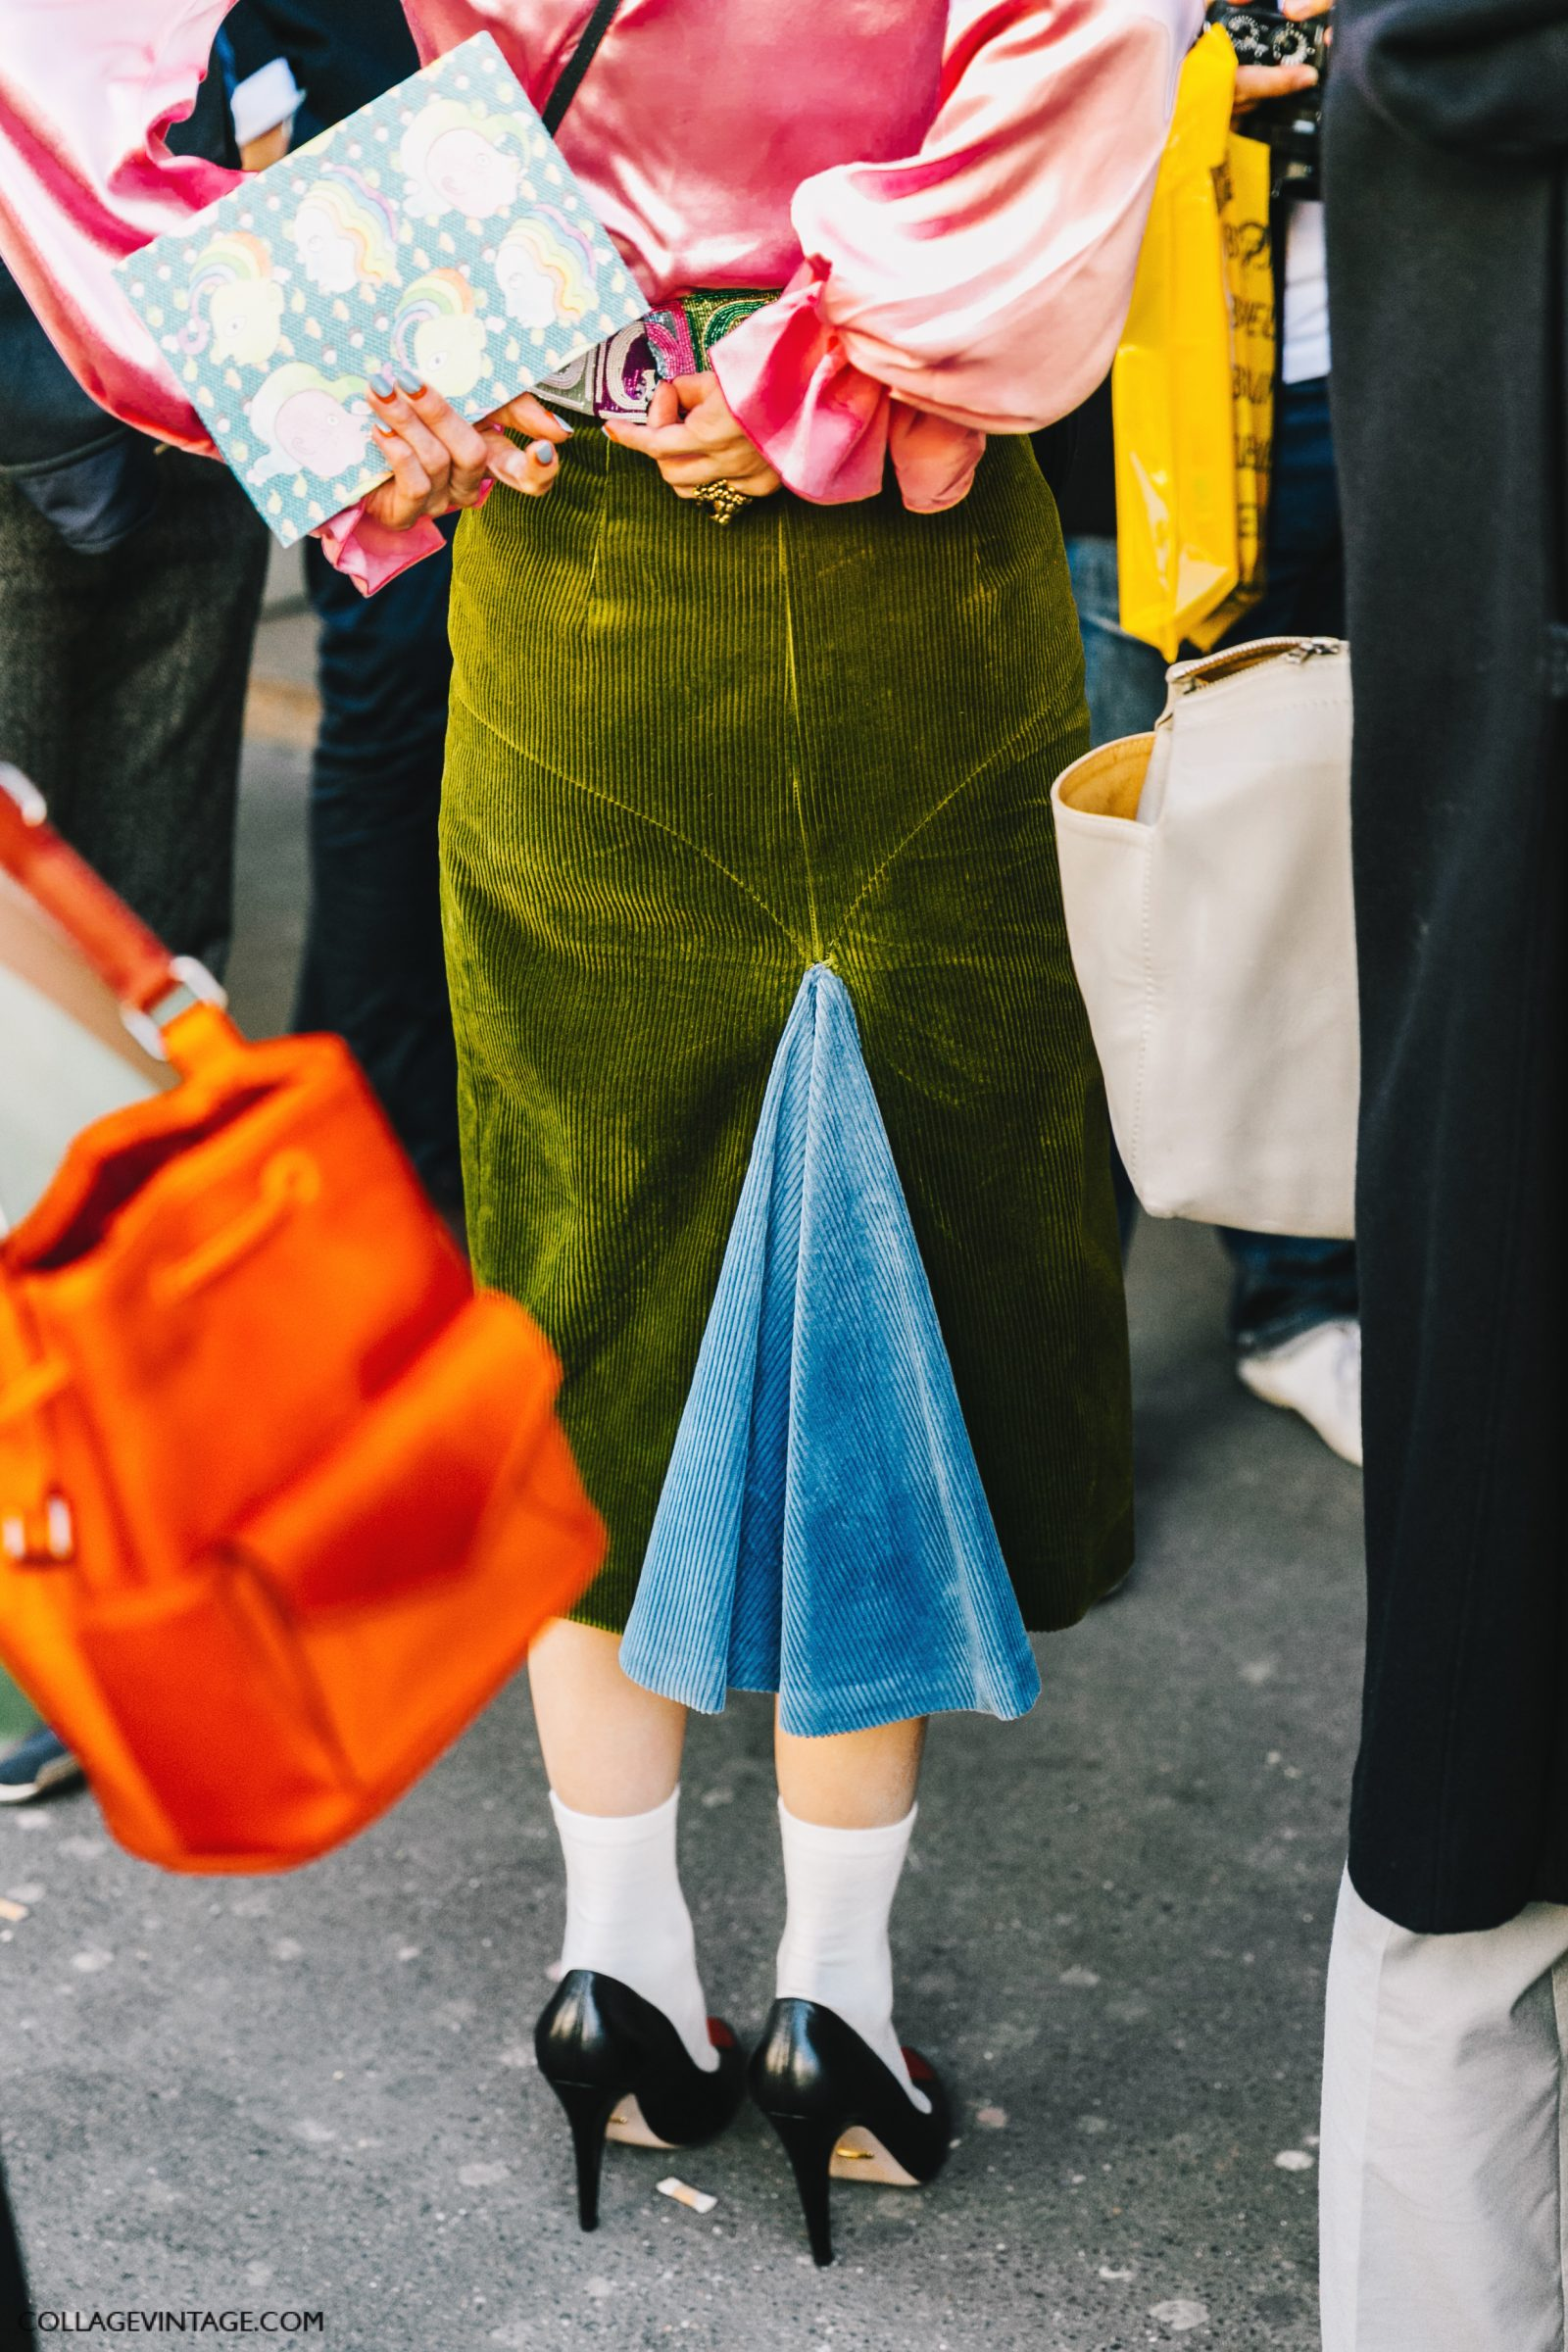 pfw-paris_fashion_week_ss17-street_style-outfits-collage_vintage-olympia_letan-hermes-stella_mccartney-sacai-152